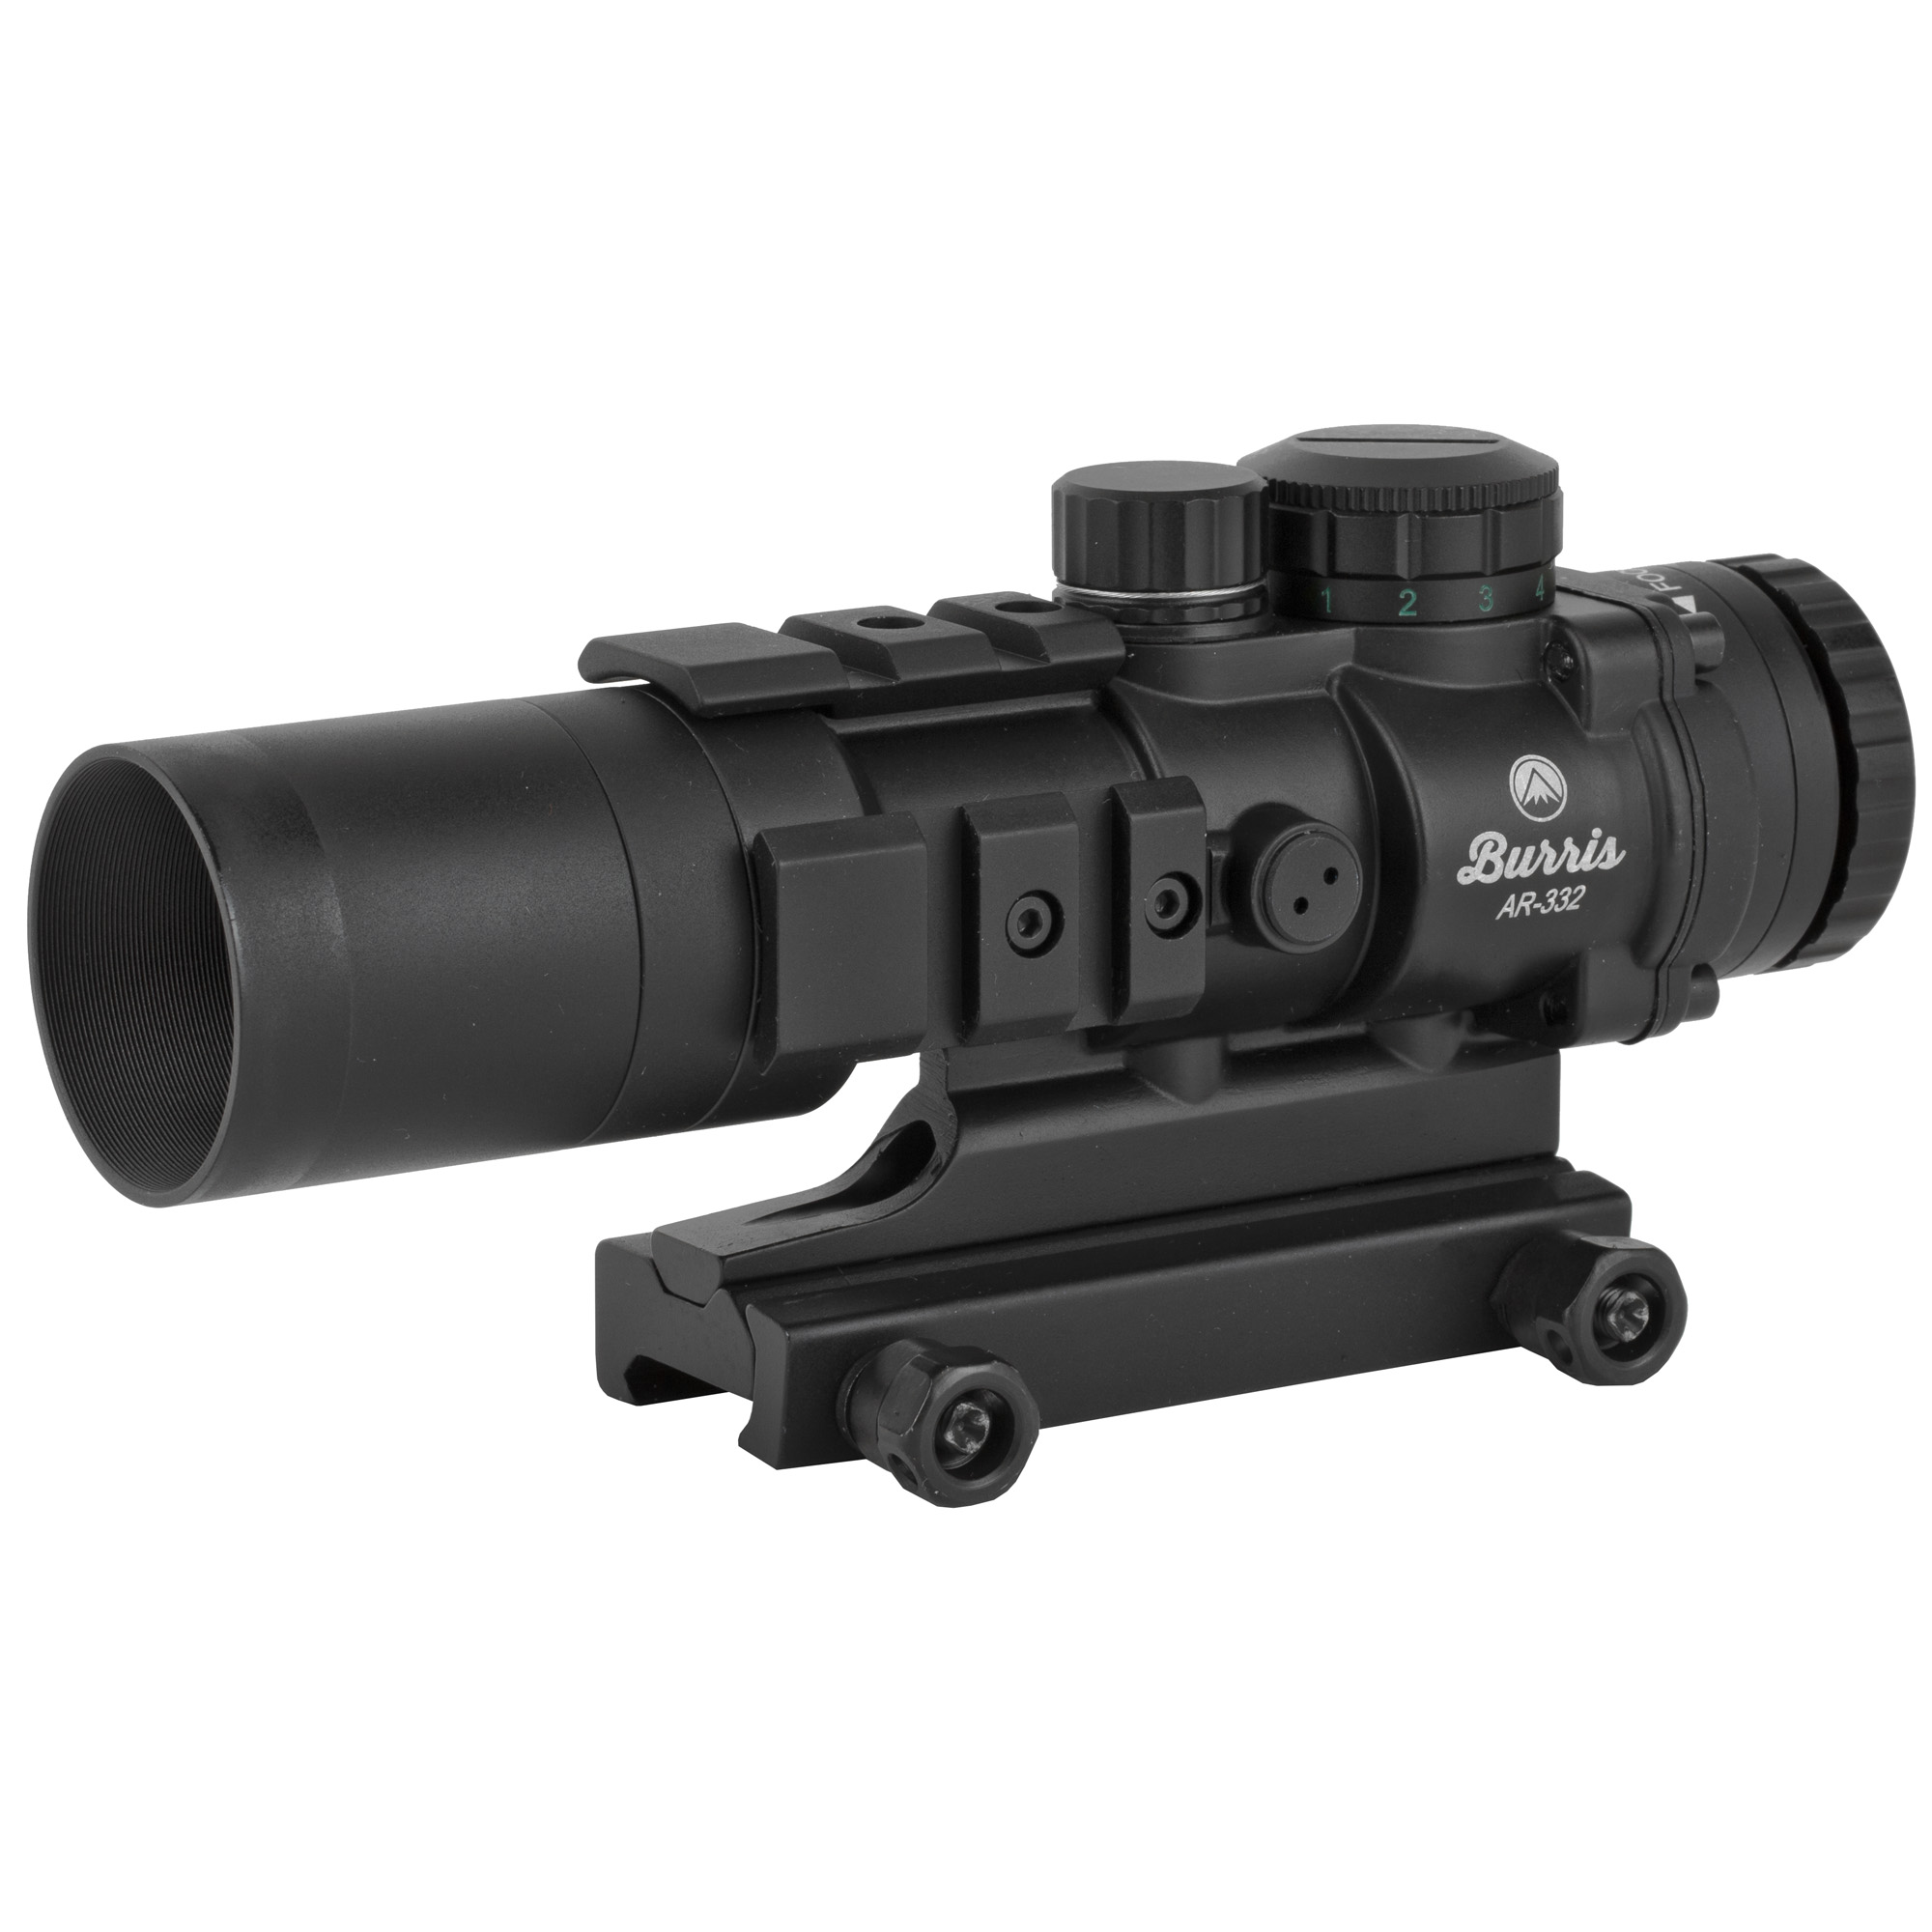 "The AR-332 is designed for lawmen"" military personnel"" and competitive shooters who want additional range from a compact"" fast-acquisition optic. The rotary"" 10-position power selector allows quick changes from red to green powered reticle"" or clear"" crisp black reticle when power is off. With five red and five green power levels"" all lighting conditions can be quickly matched. A CR2032 battery powers the reticle. The Ballistic CQ(TM) reticle features holdover dots good out to 600 yards. They work best with 5.56 or 7.62 ammunition. Picatinny rails allow piggybacking of additional sights"" lasers or lights. The entire"" rugged design is backed by the Burris Forever Warranty(TM). The perfect AR Scope for quick target acquisition"" coupled with a bit more range."